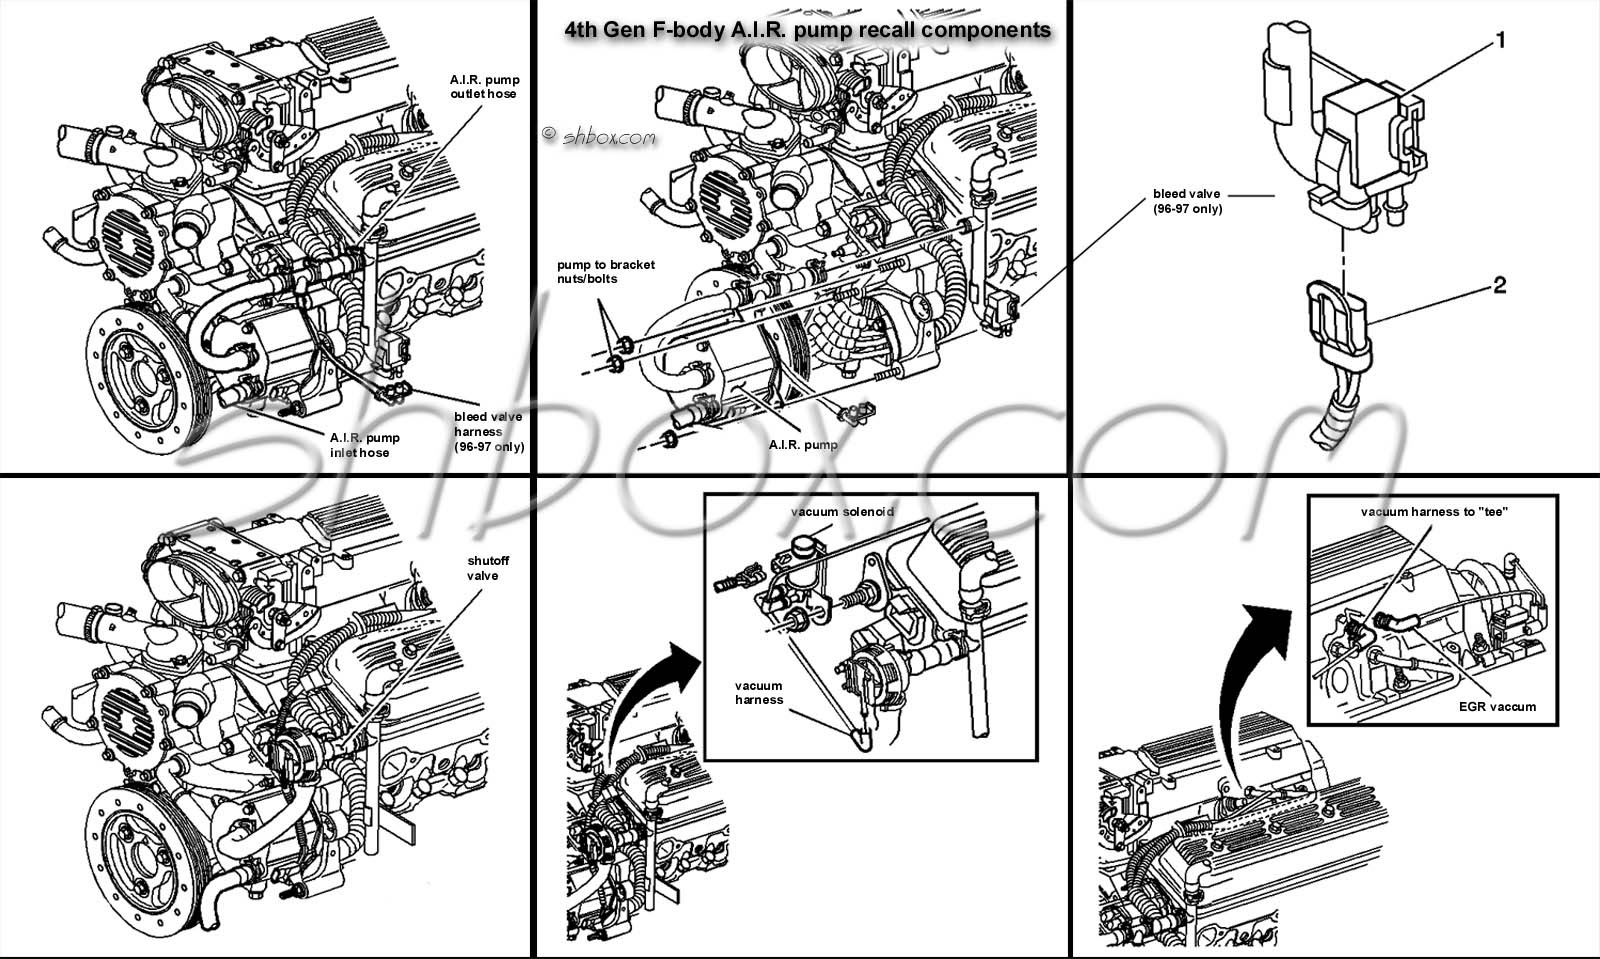 1997 Pontiac Trans Am Engine Wiring Diagram Wiring Diagram Protocol A Protocol A Sposamiora It